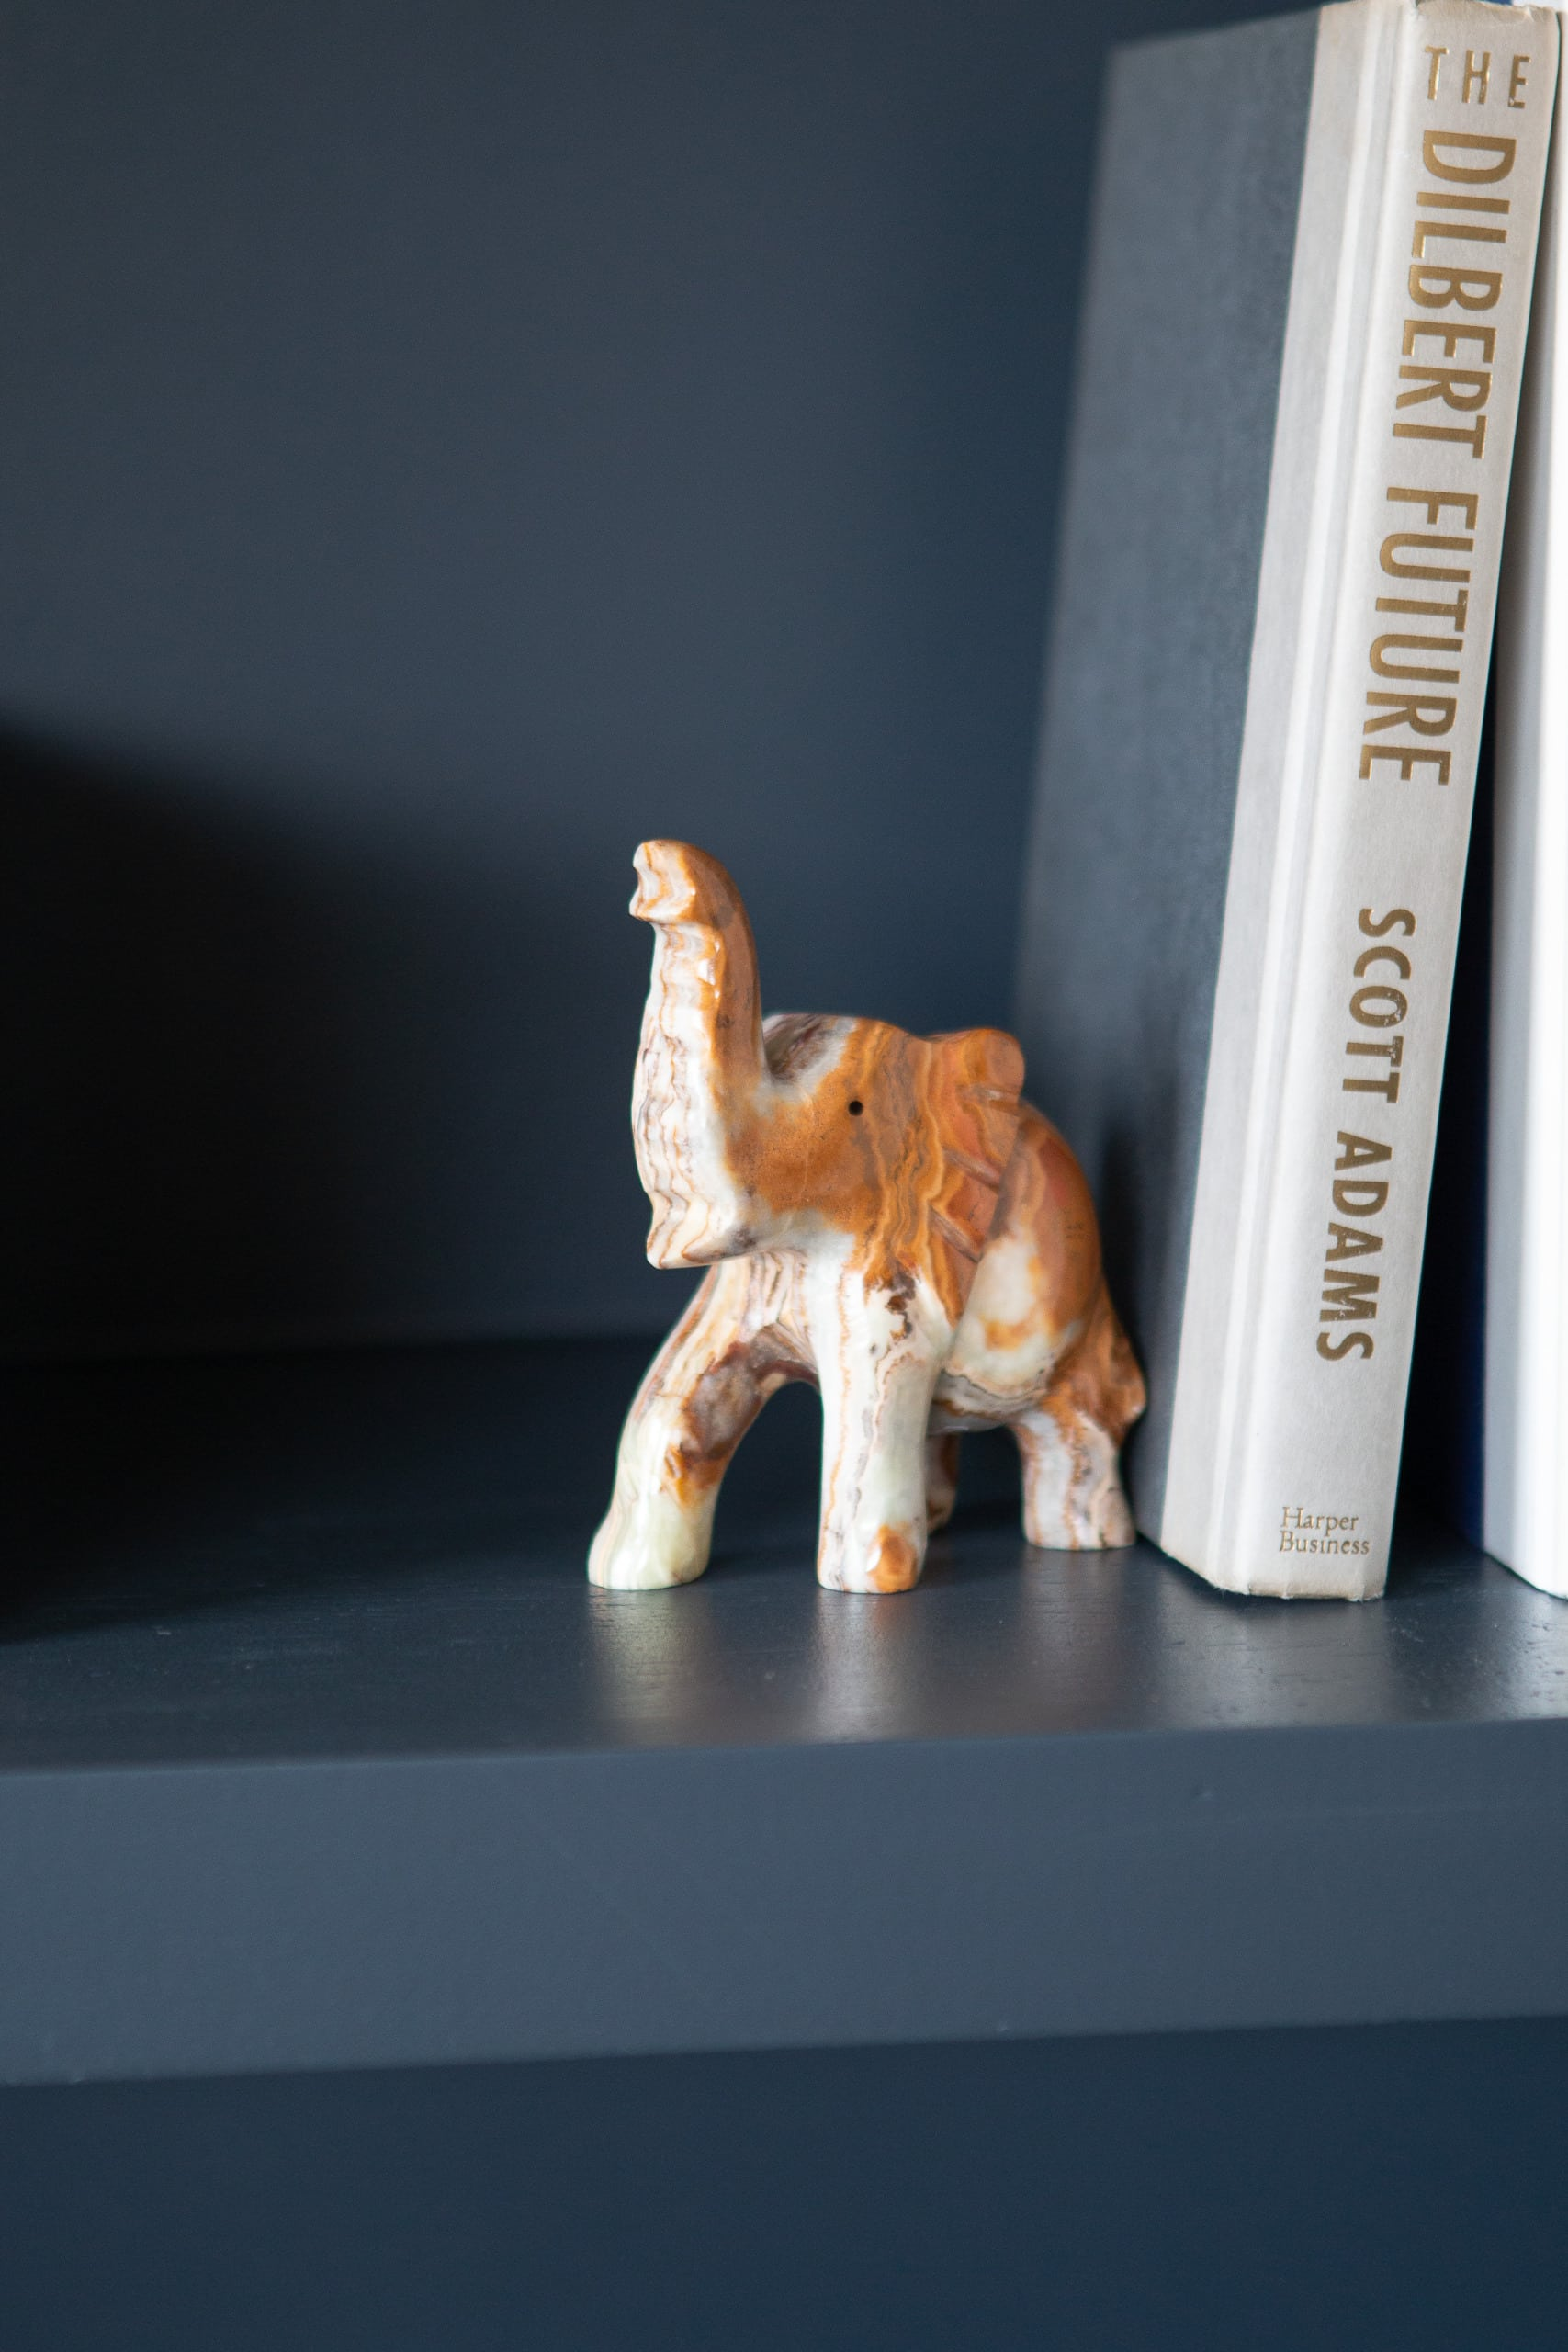 Small elephant bookend